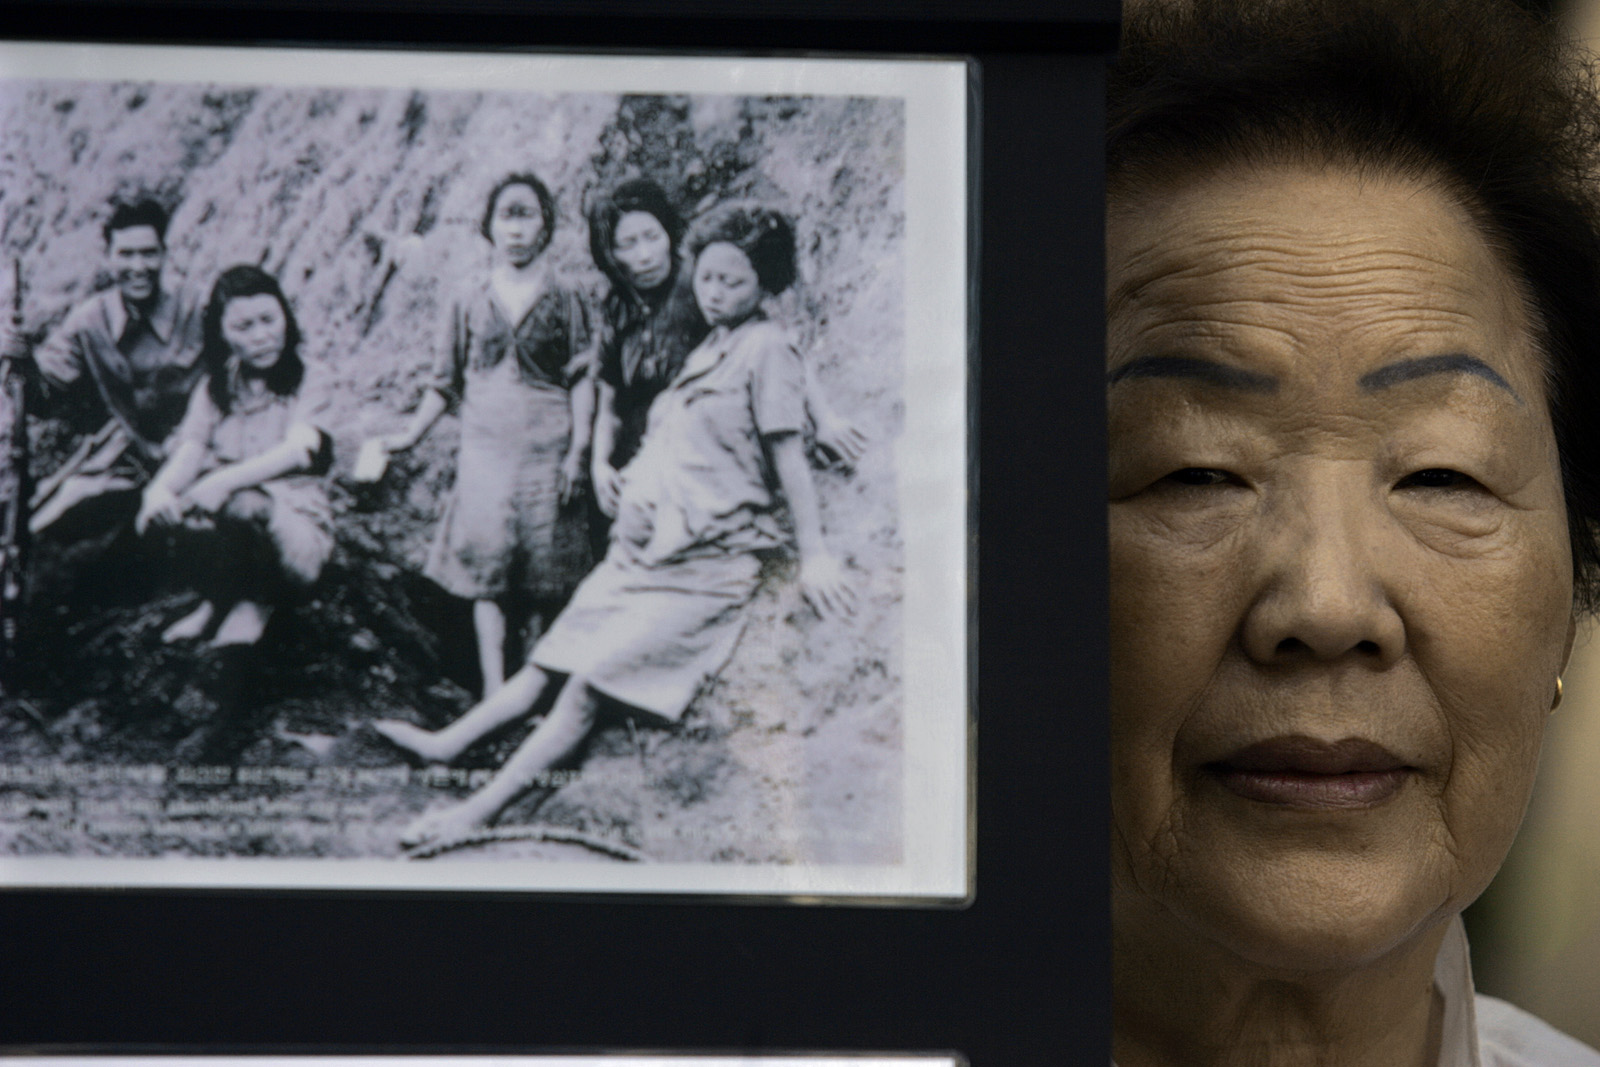 Former comfort woman Yong Soo Lee next to a picture of comfort girls. (Credit: Gary Friedman/Los Angeles Times/Getty Images)